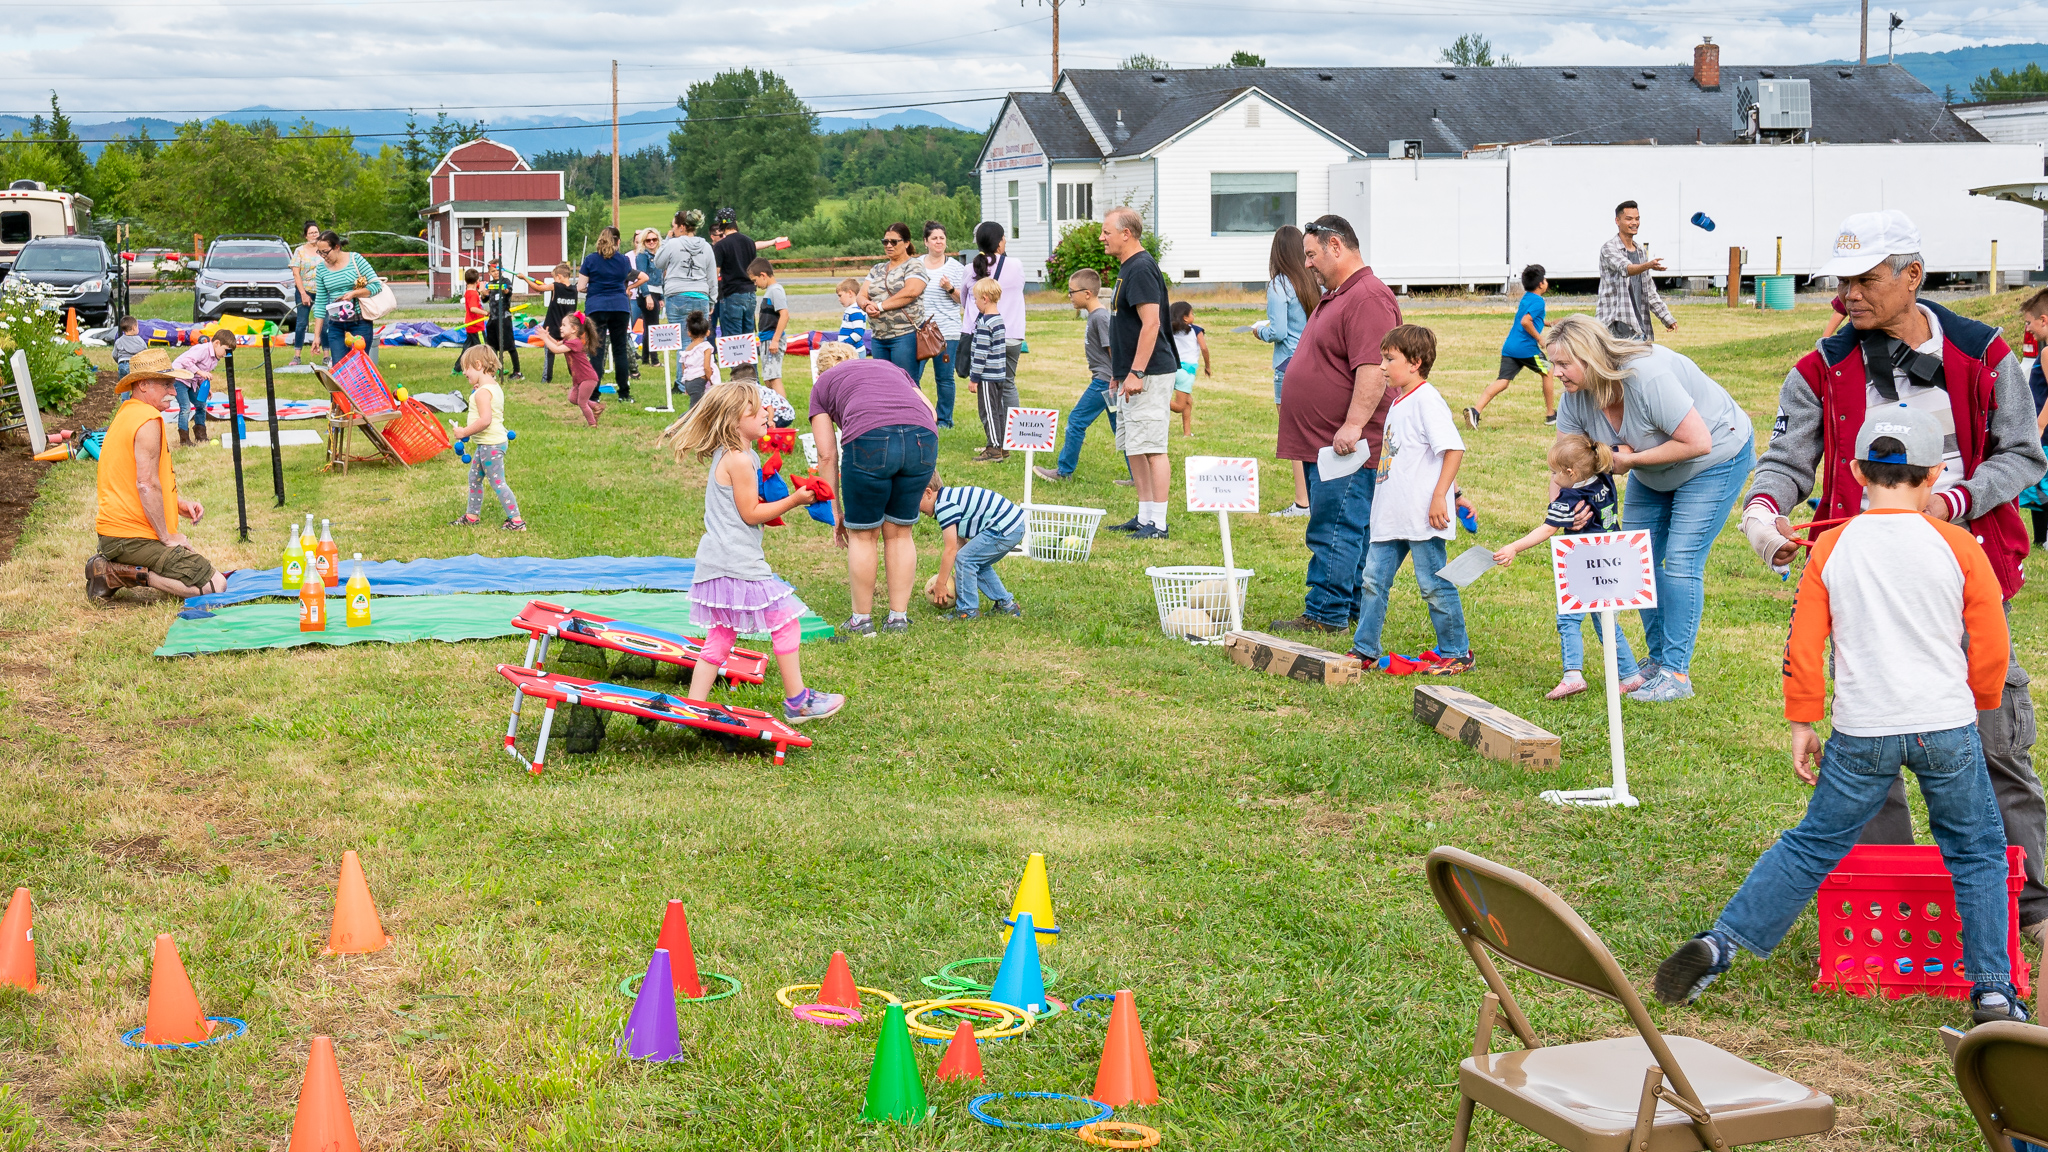 Children's ministry helped put on our second annual CTK Farm open house, Farmingham as we like to call it. They provided volunteers and lots of fun games for families to try.